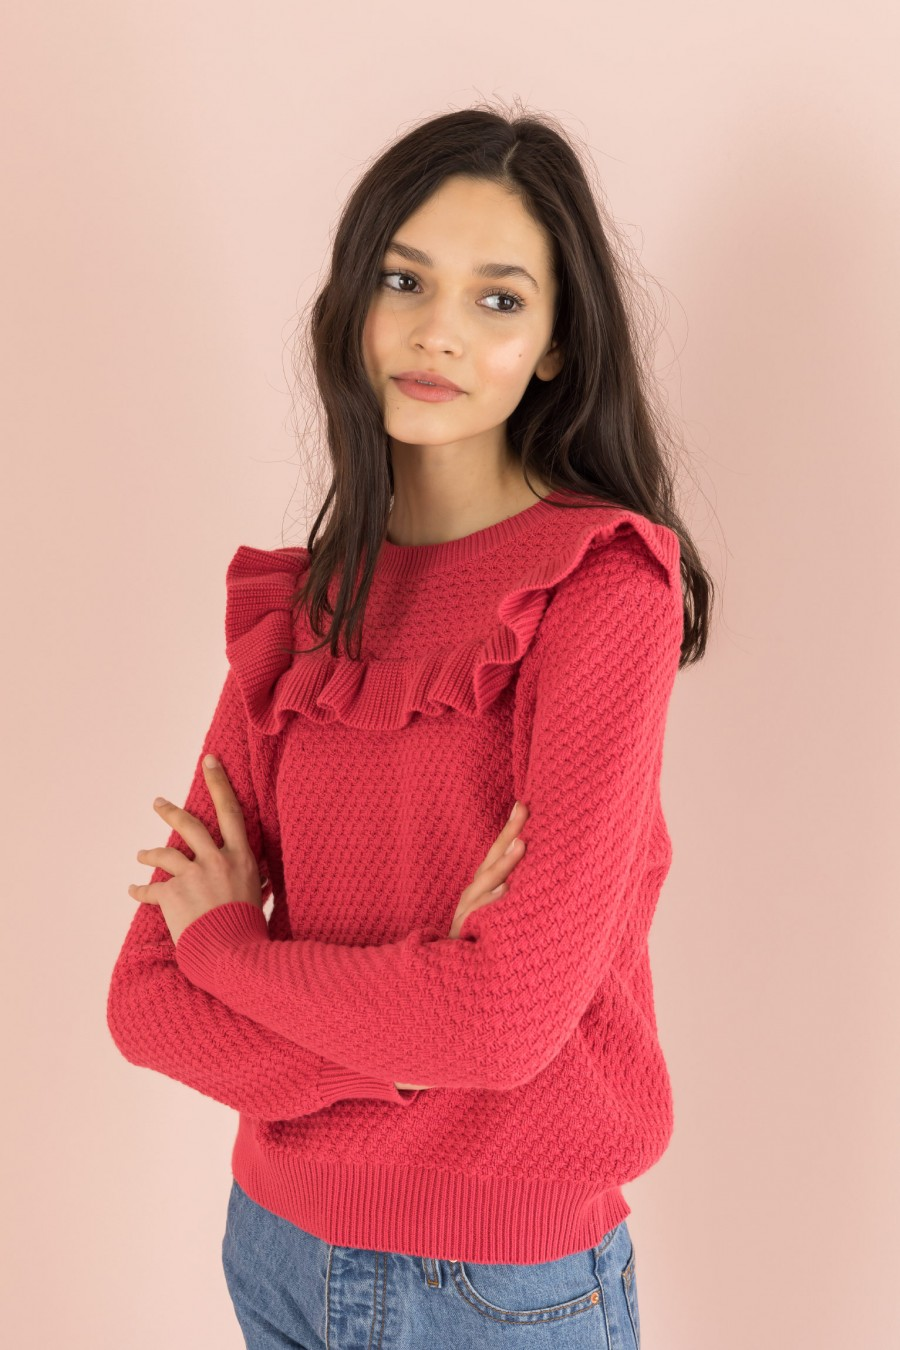 cyclamen ruffle sweater